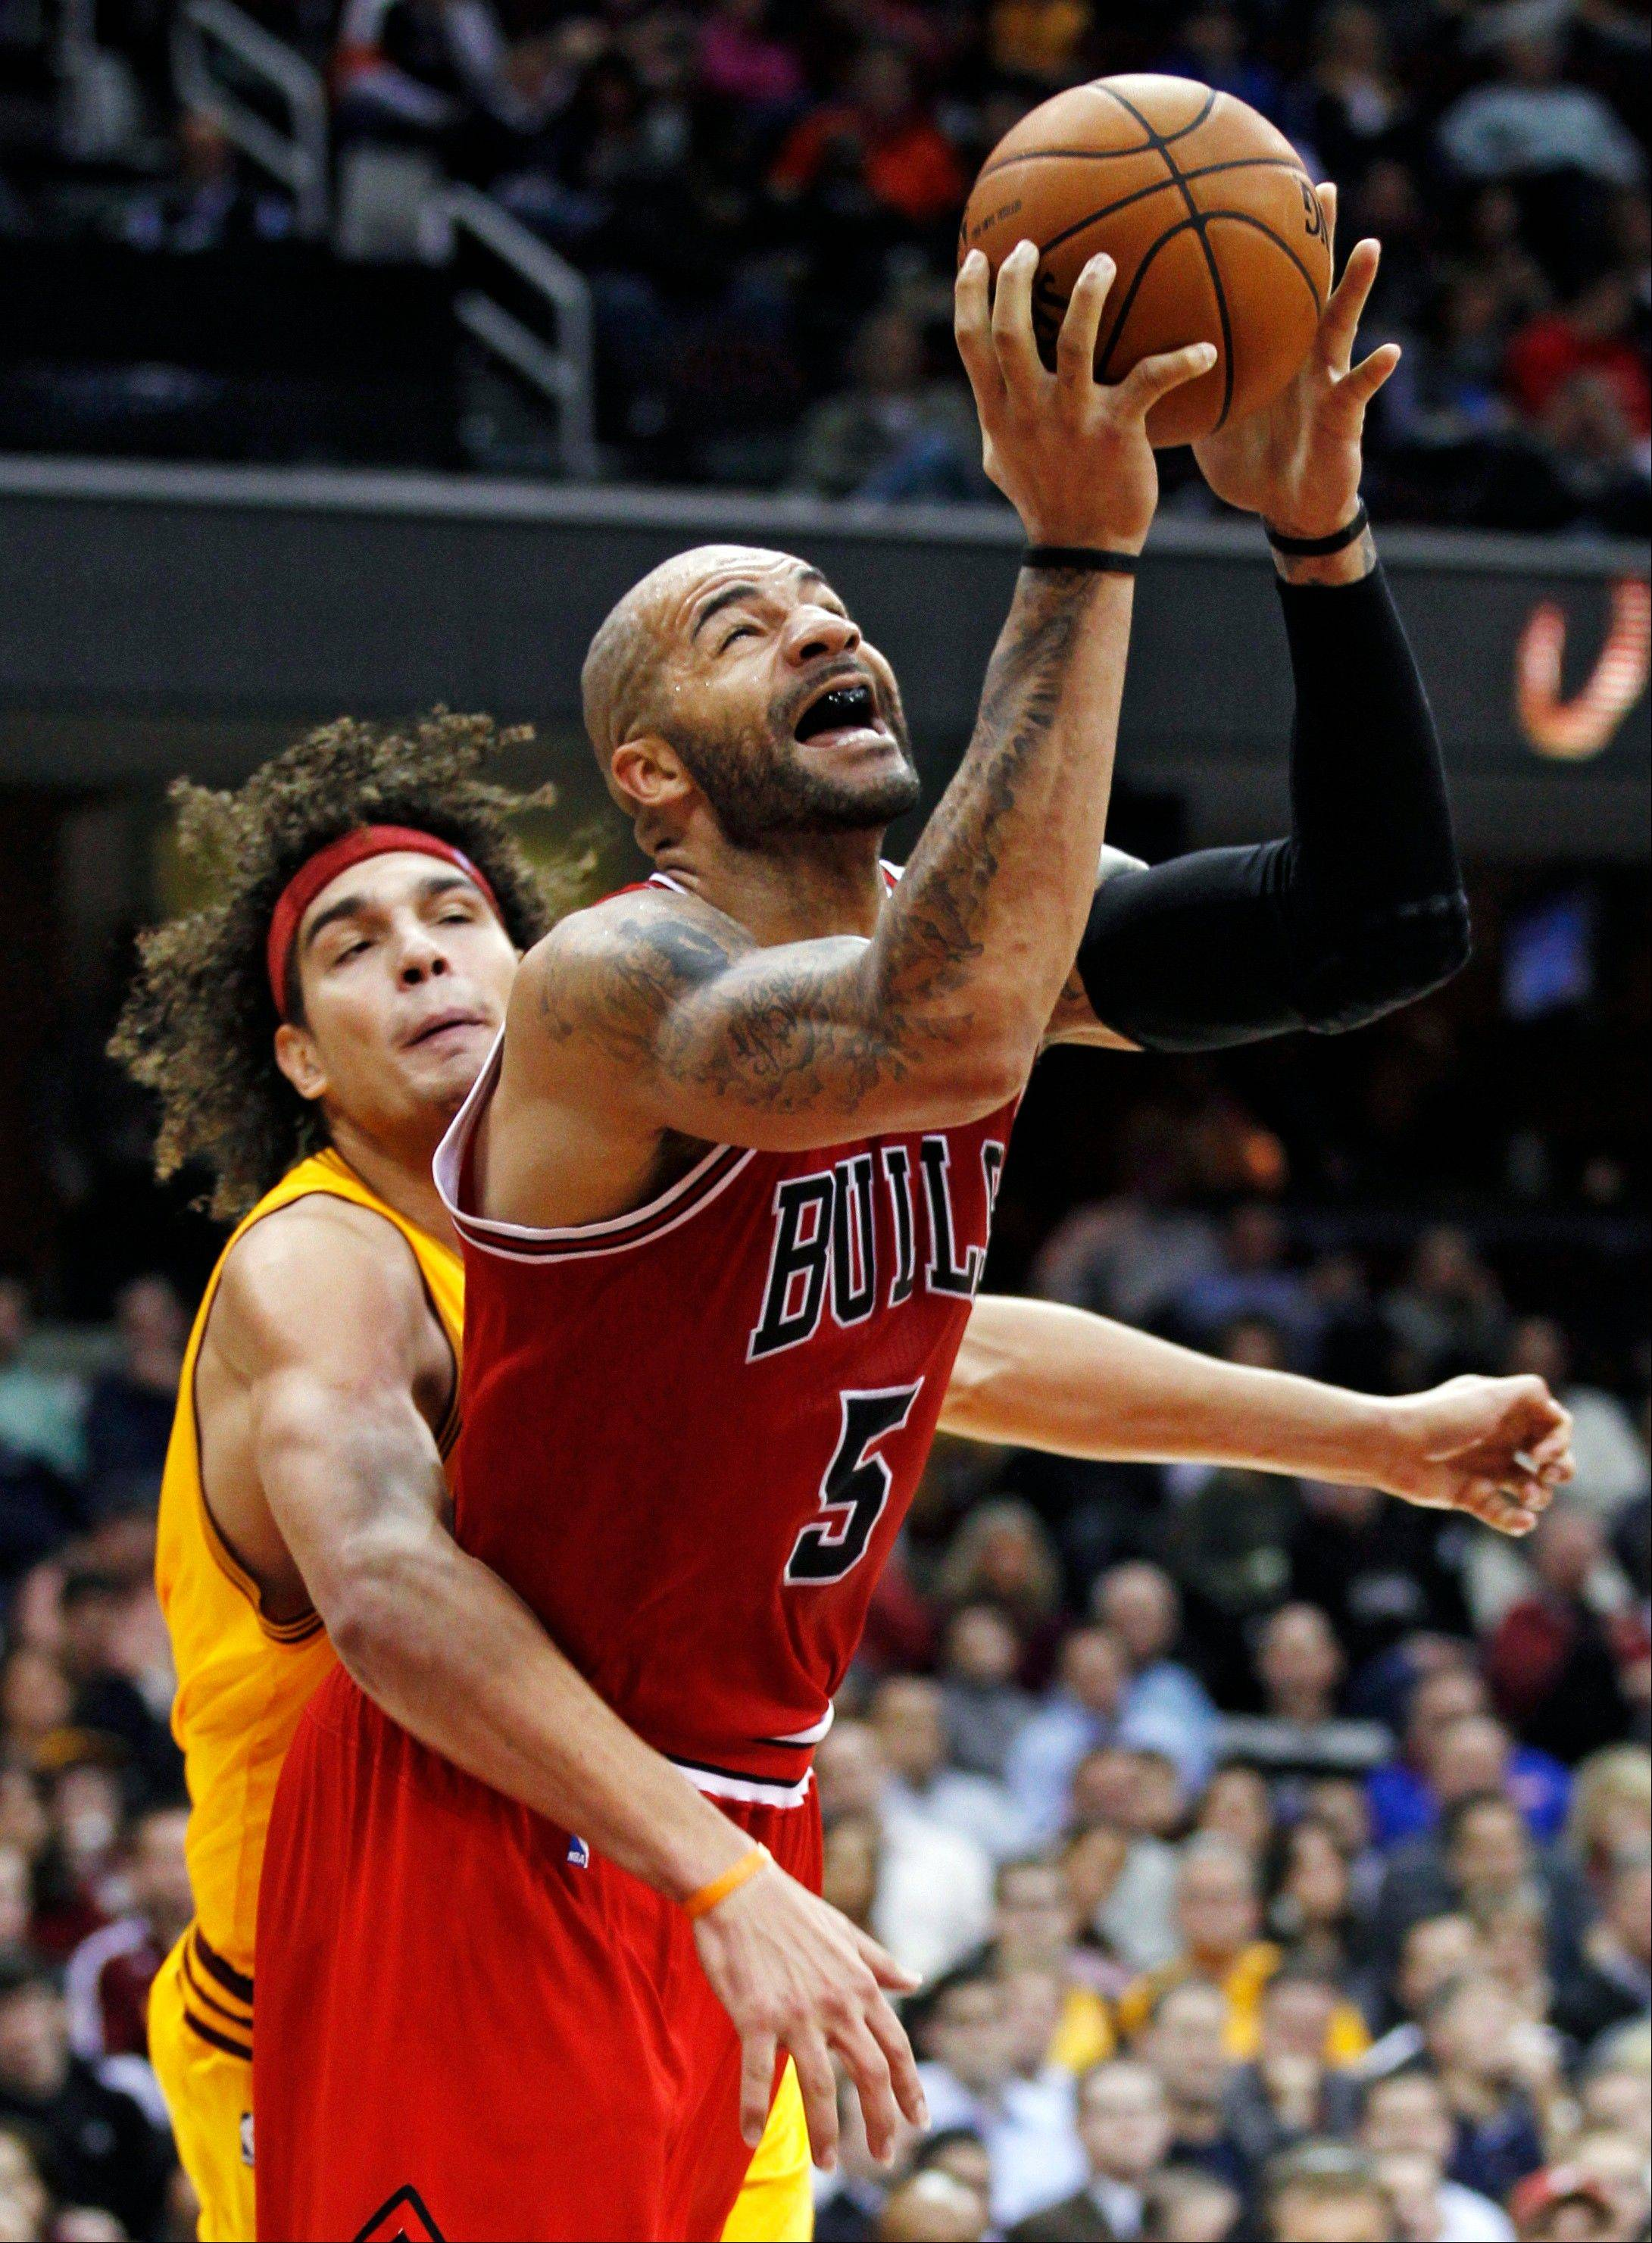 Chicago Bulls' Carlos Boozer (5) is fouled by Cleveland Cavaliers' Anderson Varejao (17), of Brazil, during the third quarter of an NBA basketball game, Wednesday, Dec. 5, 2012, in Cleveland. The Bulls won 95-85. (AP Photo/Tony Dejak)